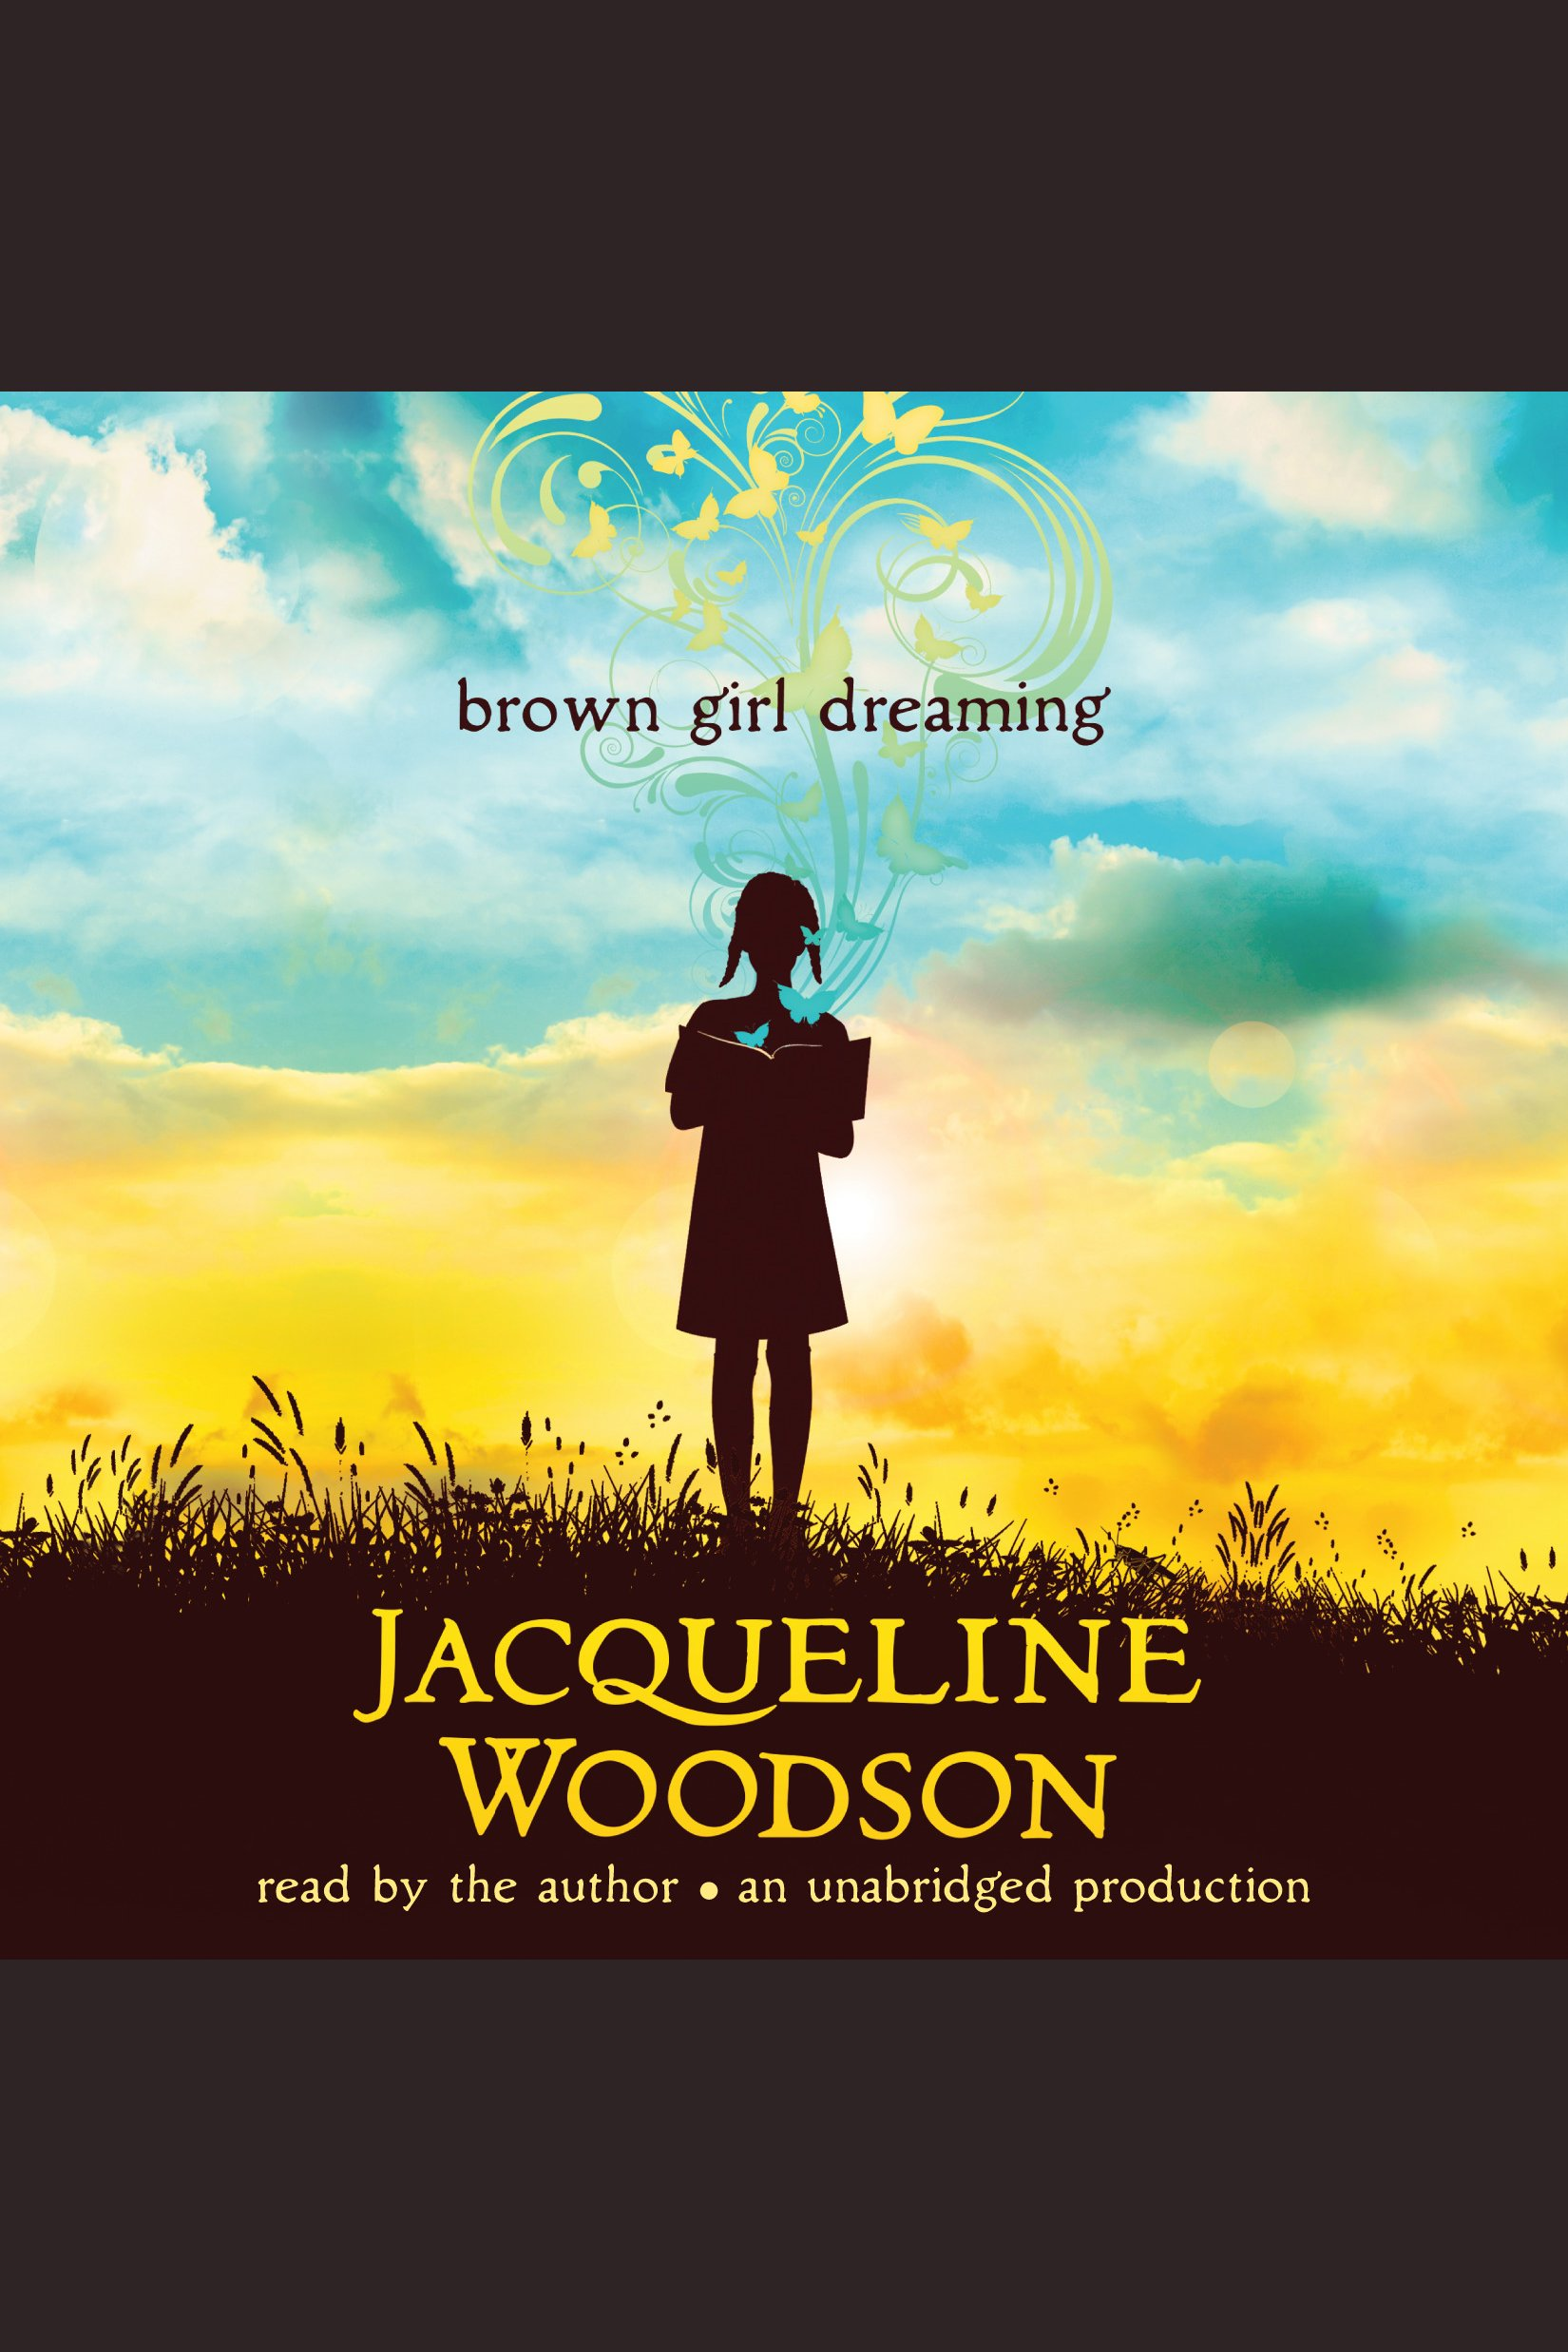 Brown girl dreaming cover image